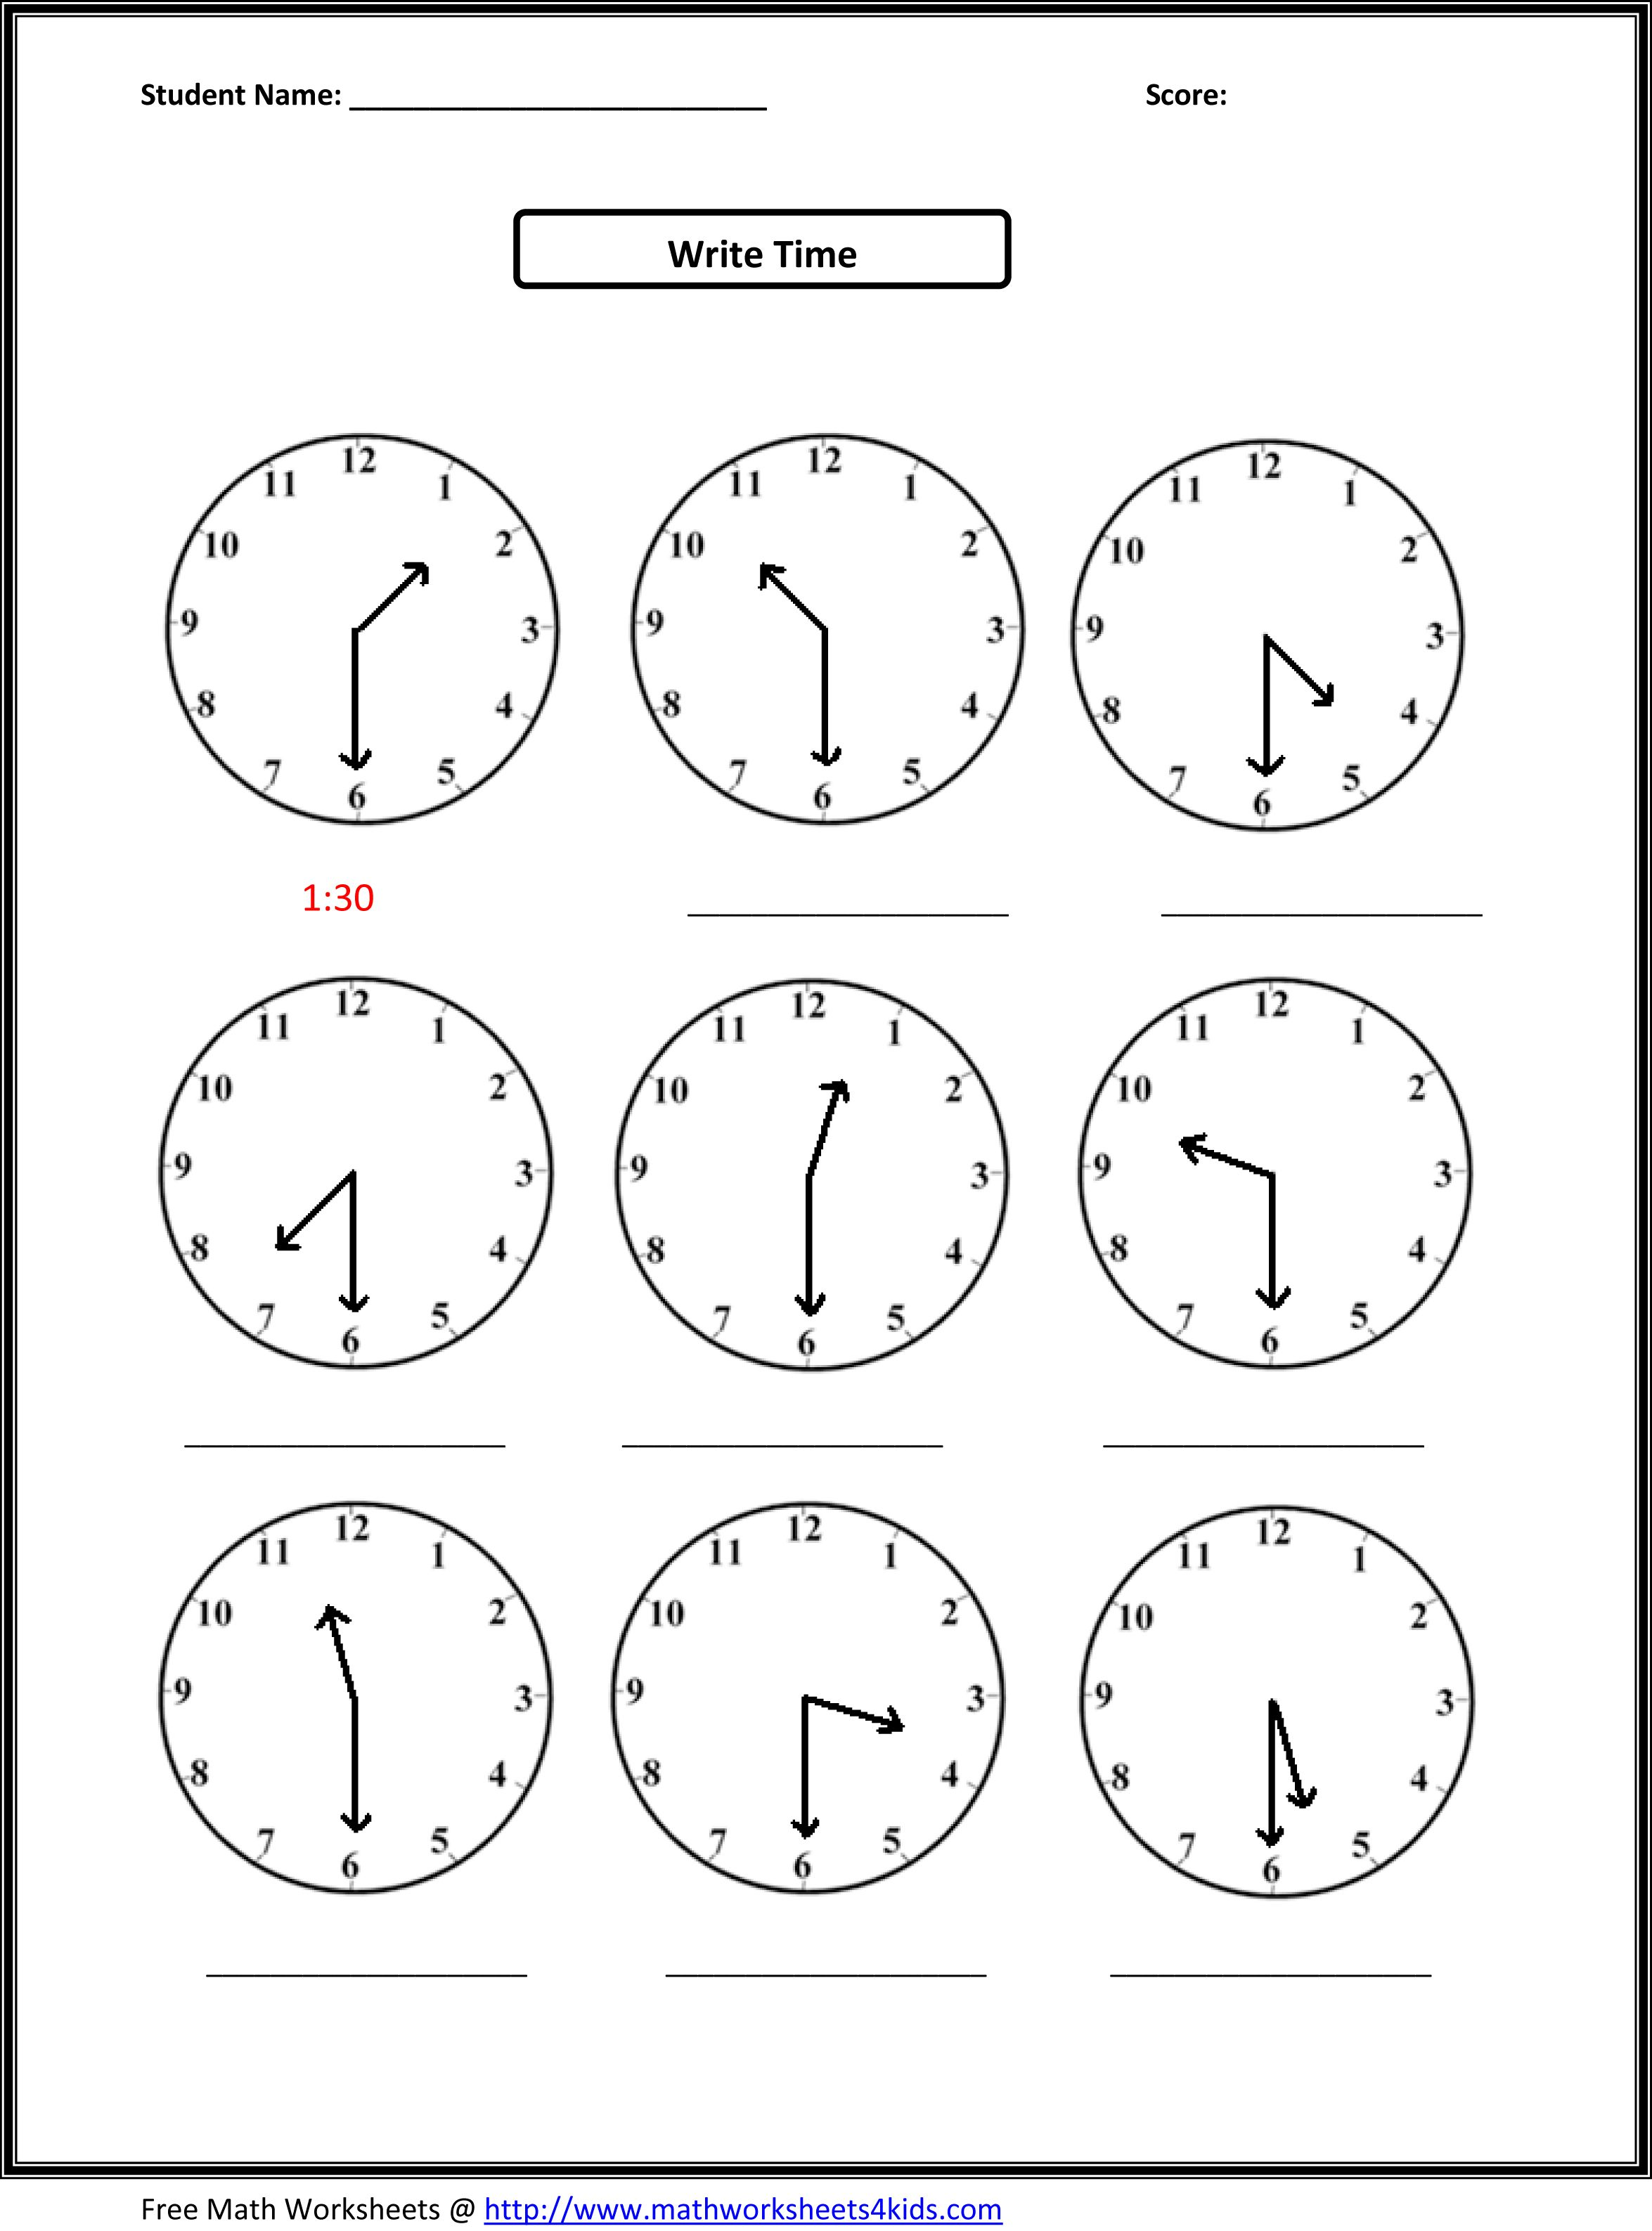 Weirdmailus  Seductive Worksheet On Time For Grade   Reocurent With Gorgeous Free Printable Telling Time Worksheets Nd Grade  Reocurent With Comely Map Key Worksheets Also Nd Grade Addition Worksheet In Addition Algebraic Transformations Worksheet And Alphabet Letters Worksheets As Well As Reading A Chart Worksheet Additionally Kindergarten Blends Worksheets From Reocurentcom With Weirdmailus  Gorgeous Worksheet On Time For Grade   Reocurent With Comely Free Printable Telling Time Worksheets Nd Grade  Reocurent And Seductive Map Key Worksheets Also Nd Grade Addition Worksheet In Addition Algebraic Transformations Worksheet From Reocurentcom